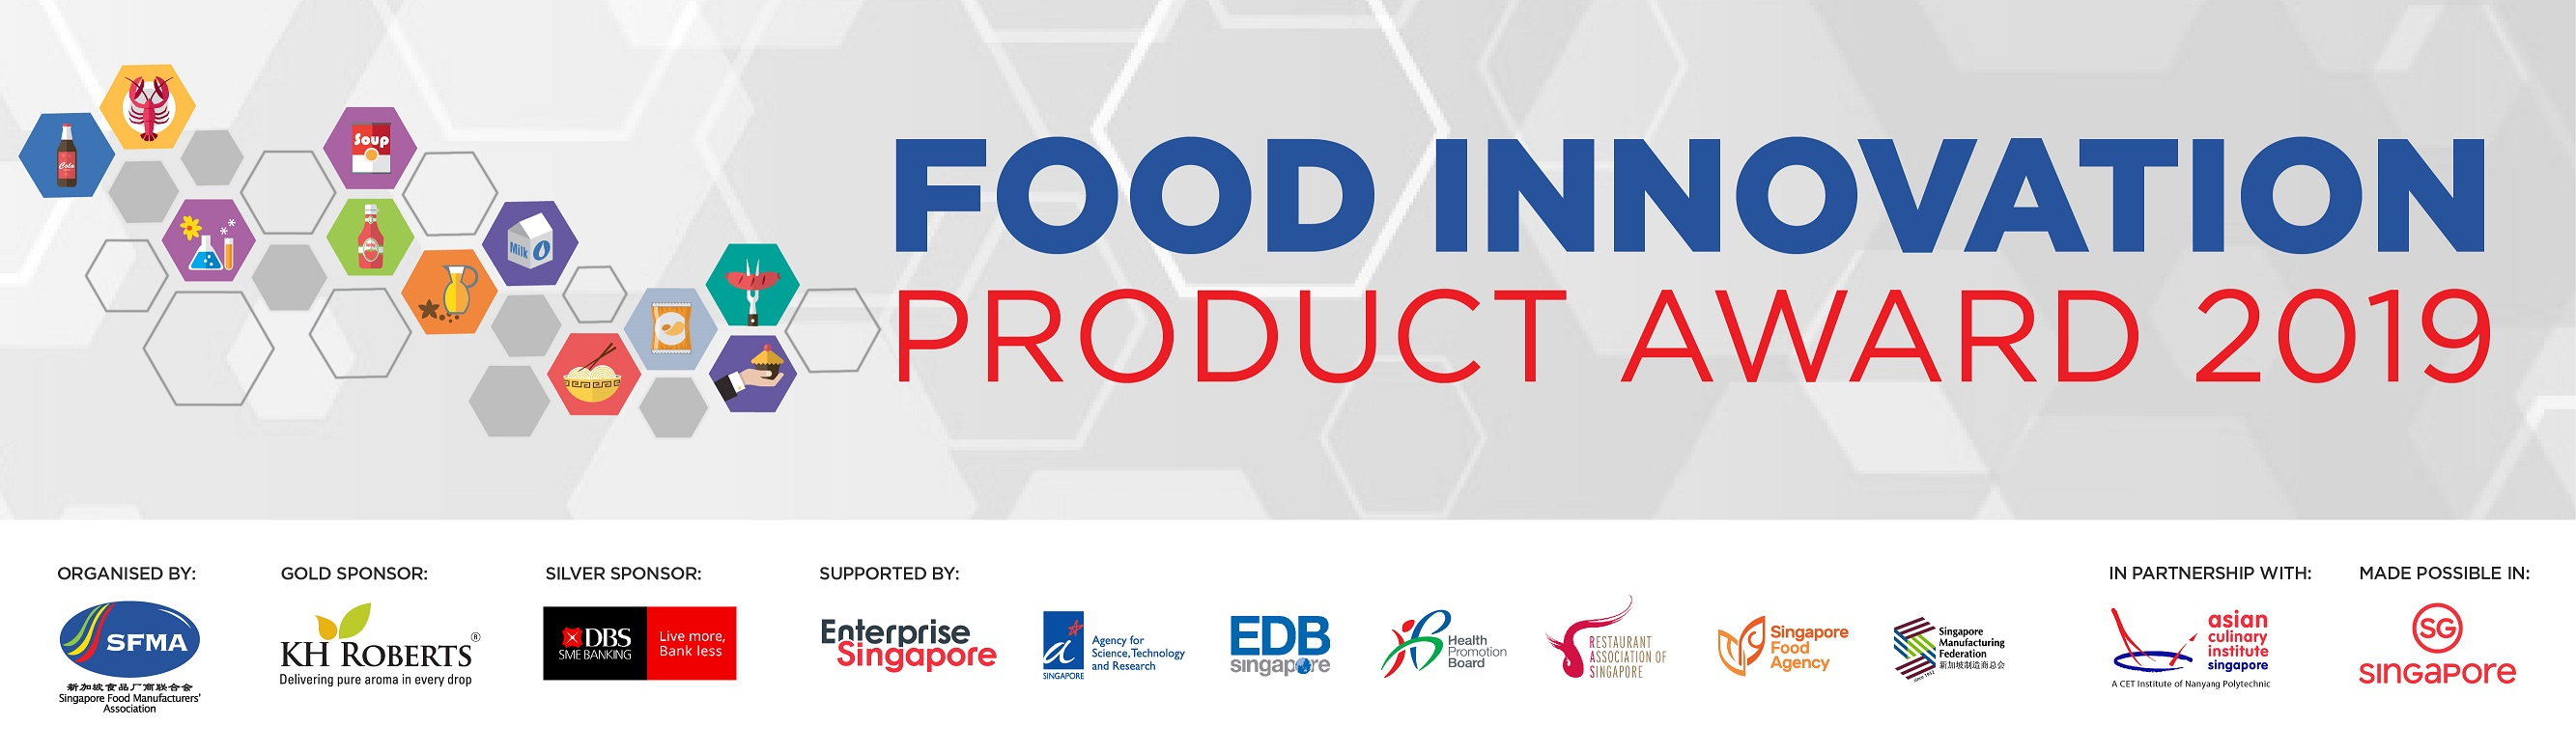 Food Innovation Product Award 2019